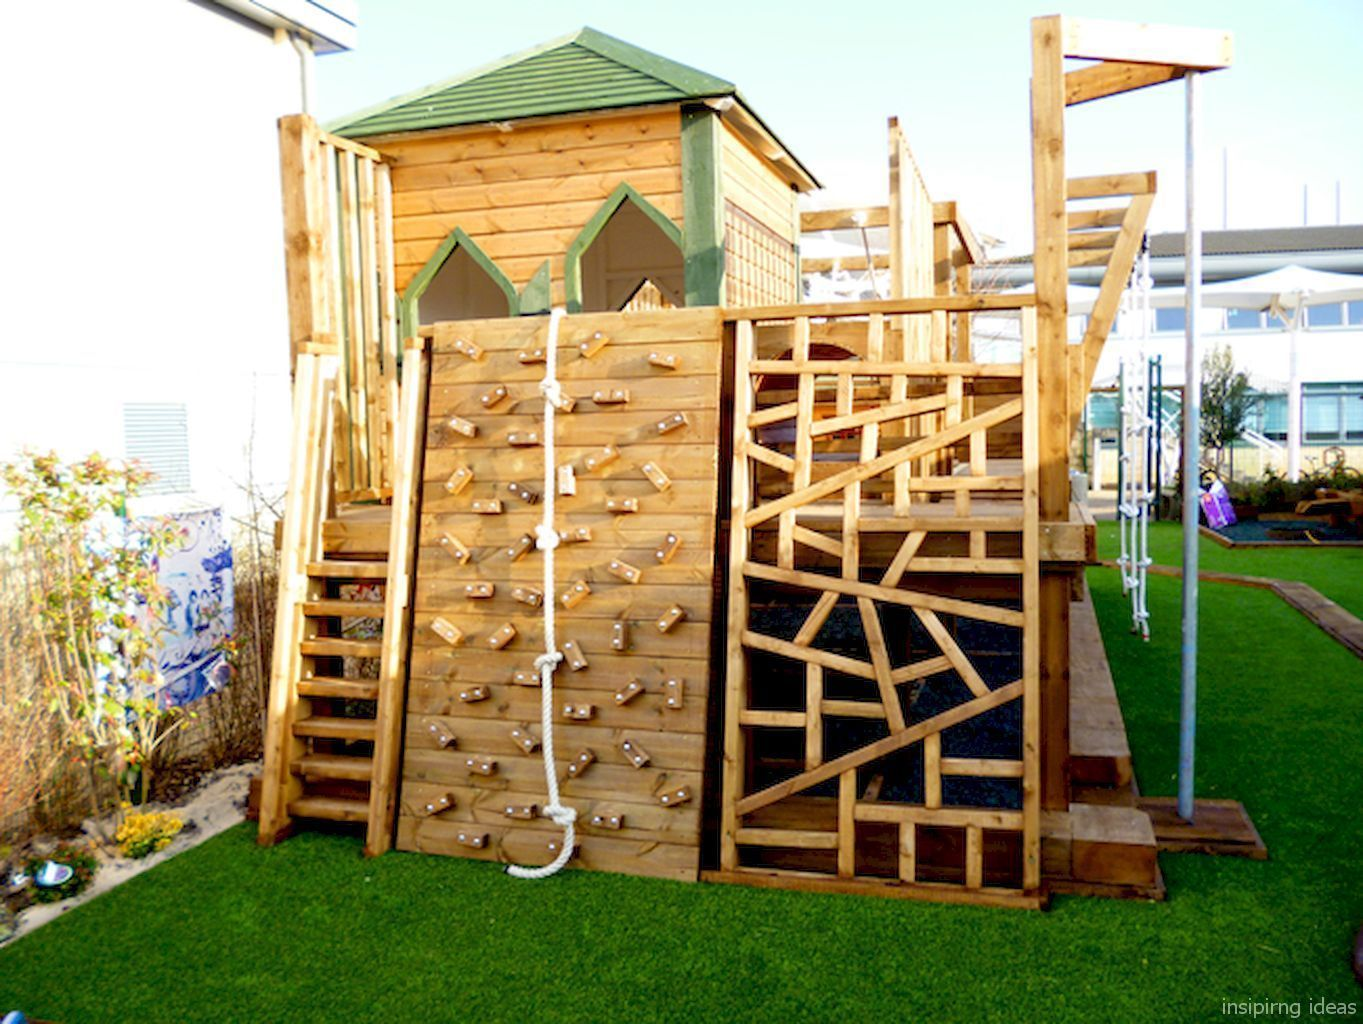 101 Affordable Playground Design Ideas for Kids | Playground ...